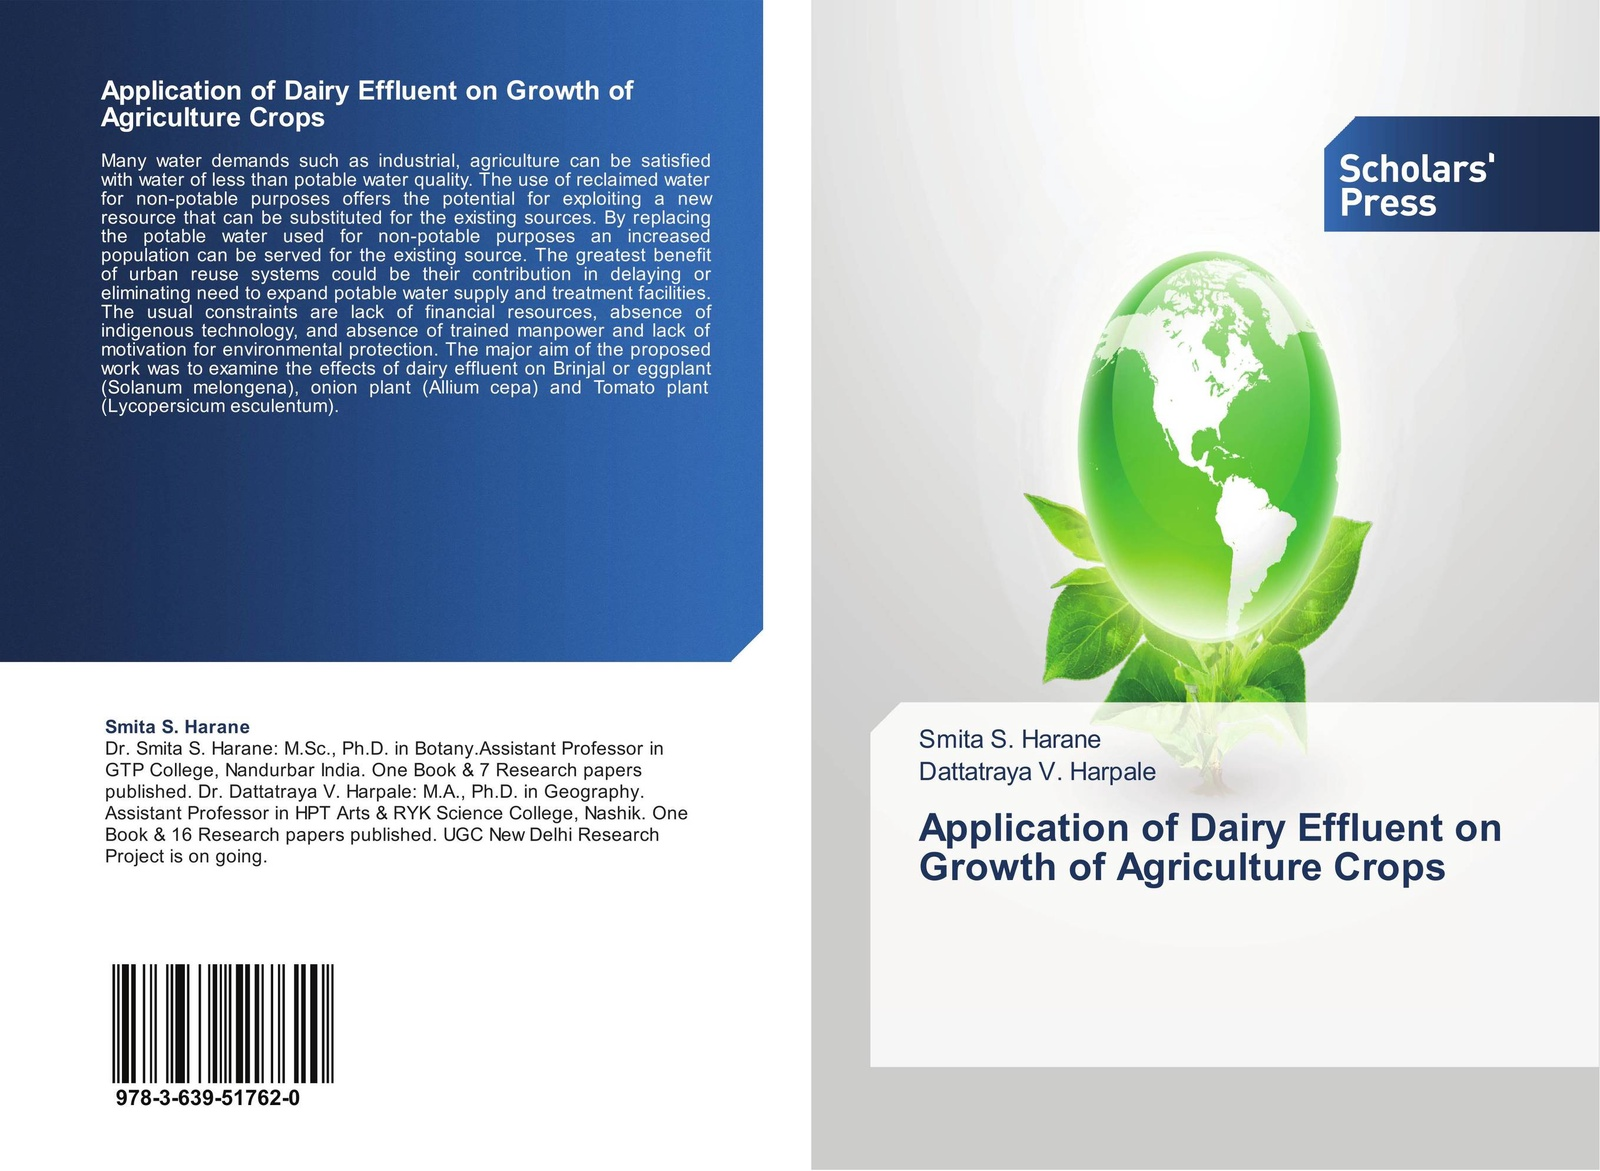 Smita S. Harane and Dattatraya V. Harpale Application of Dairy Effluent on Growth of Agriculture Crops gholamreza asadollahfardi rashin asadollahfardi the usage of the polluted water for agriculture